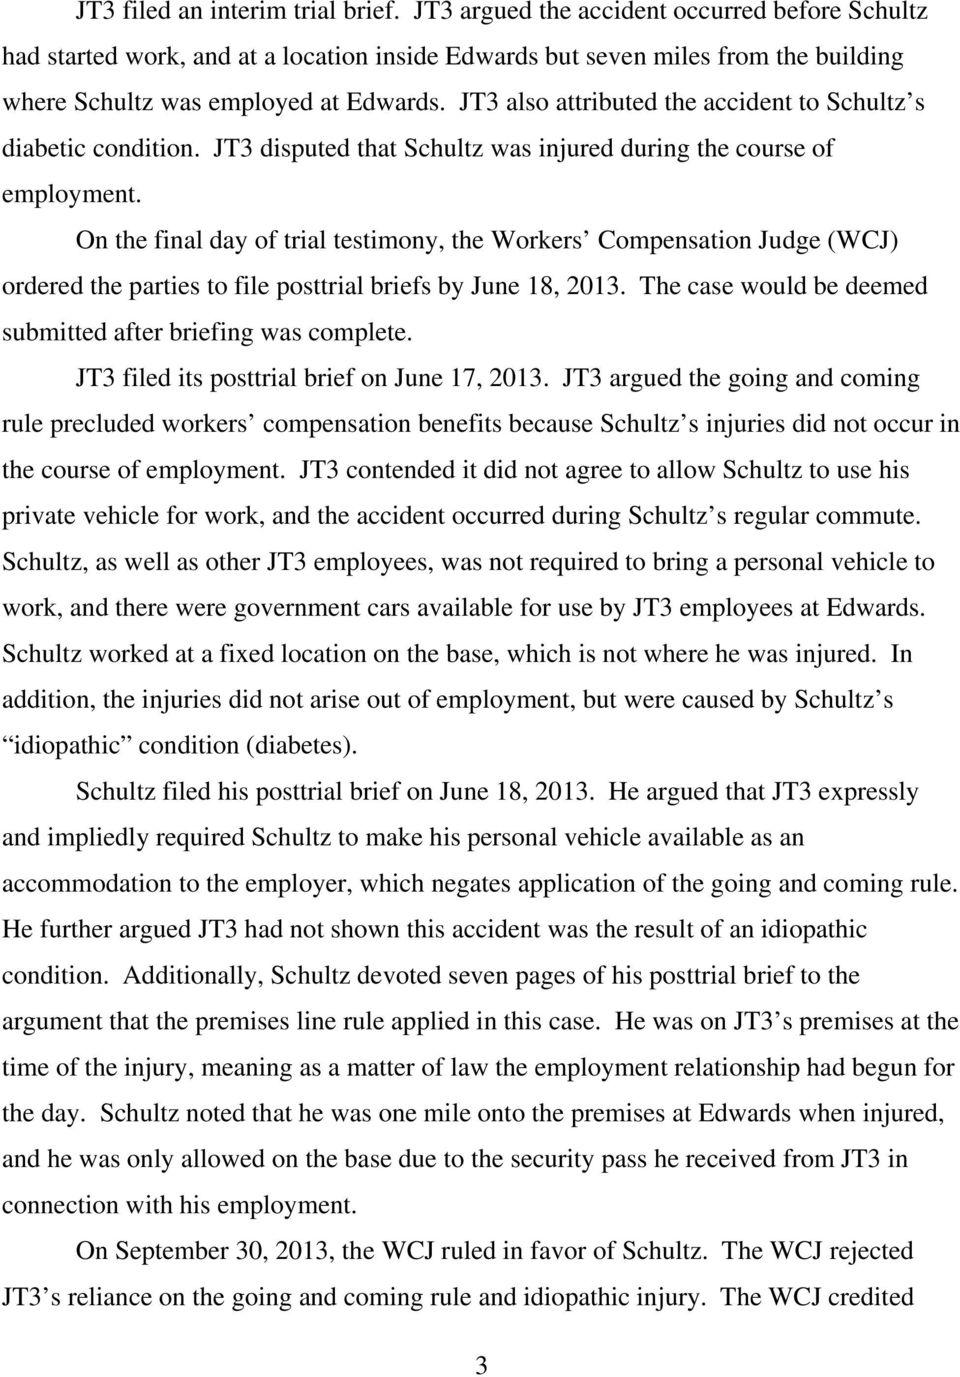 JT3 also attributed the accident to Schultz s diabetic condition. JT3 disputed that Schultz was injured during the course of employment.